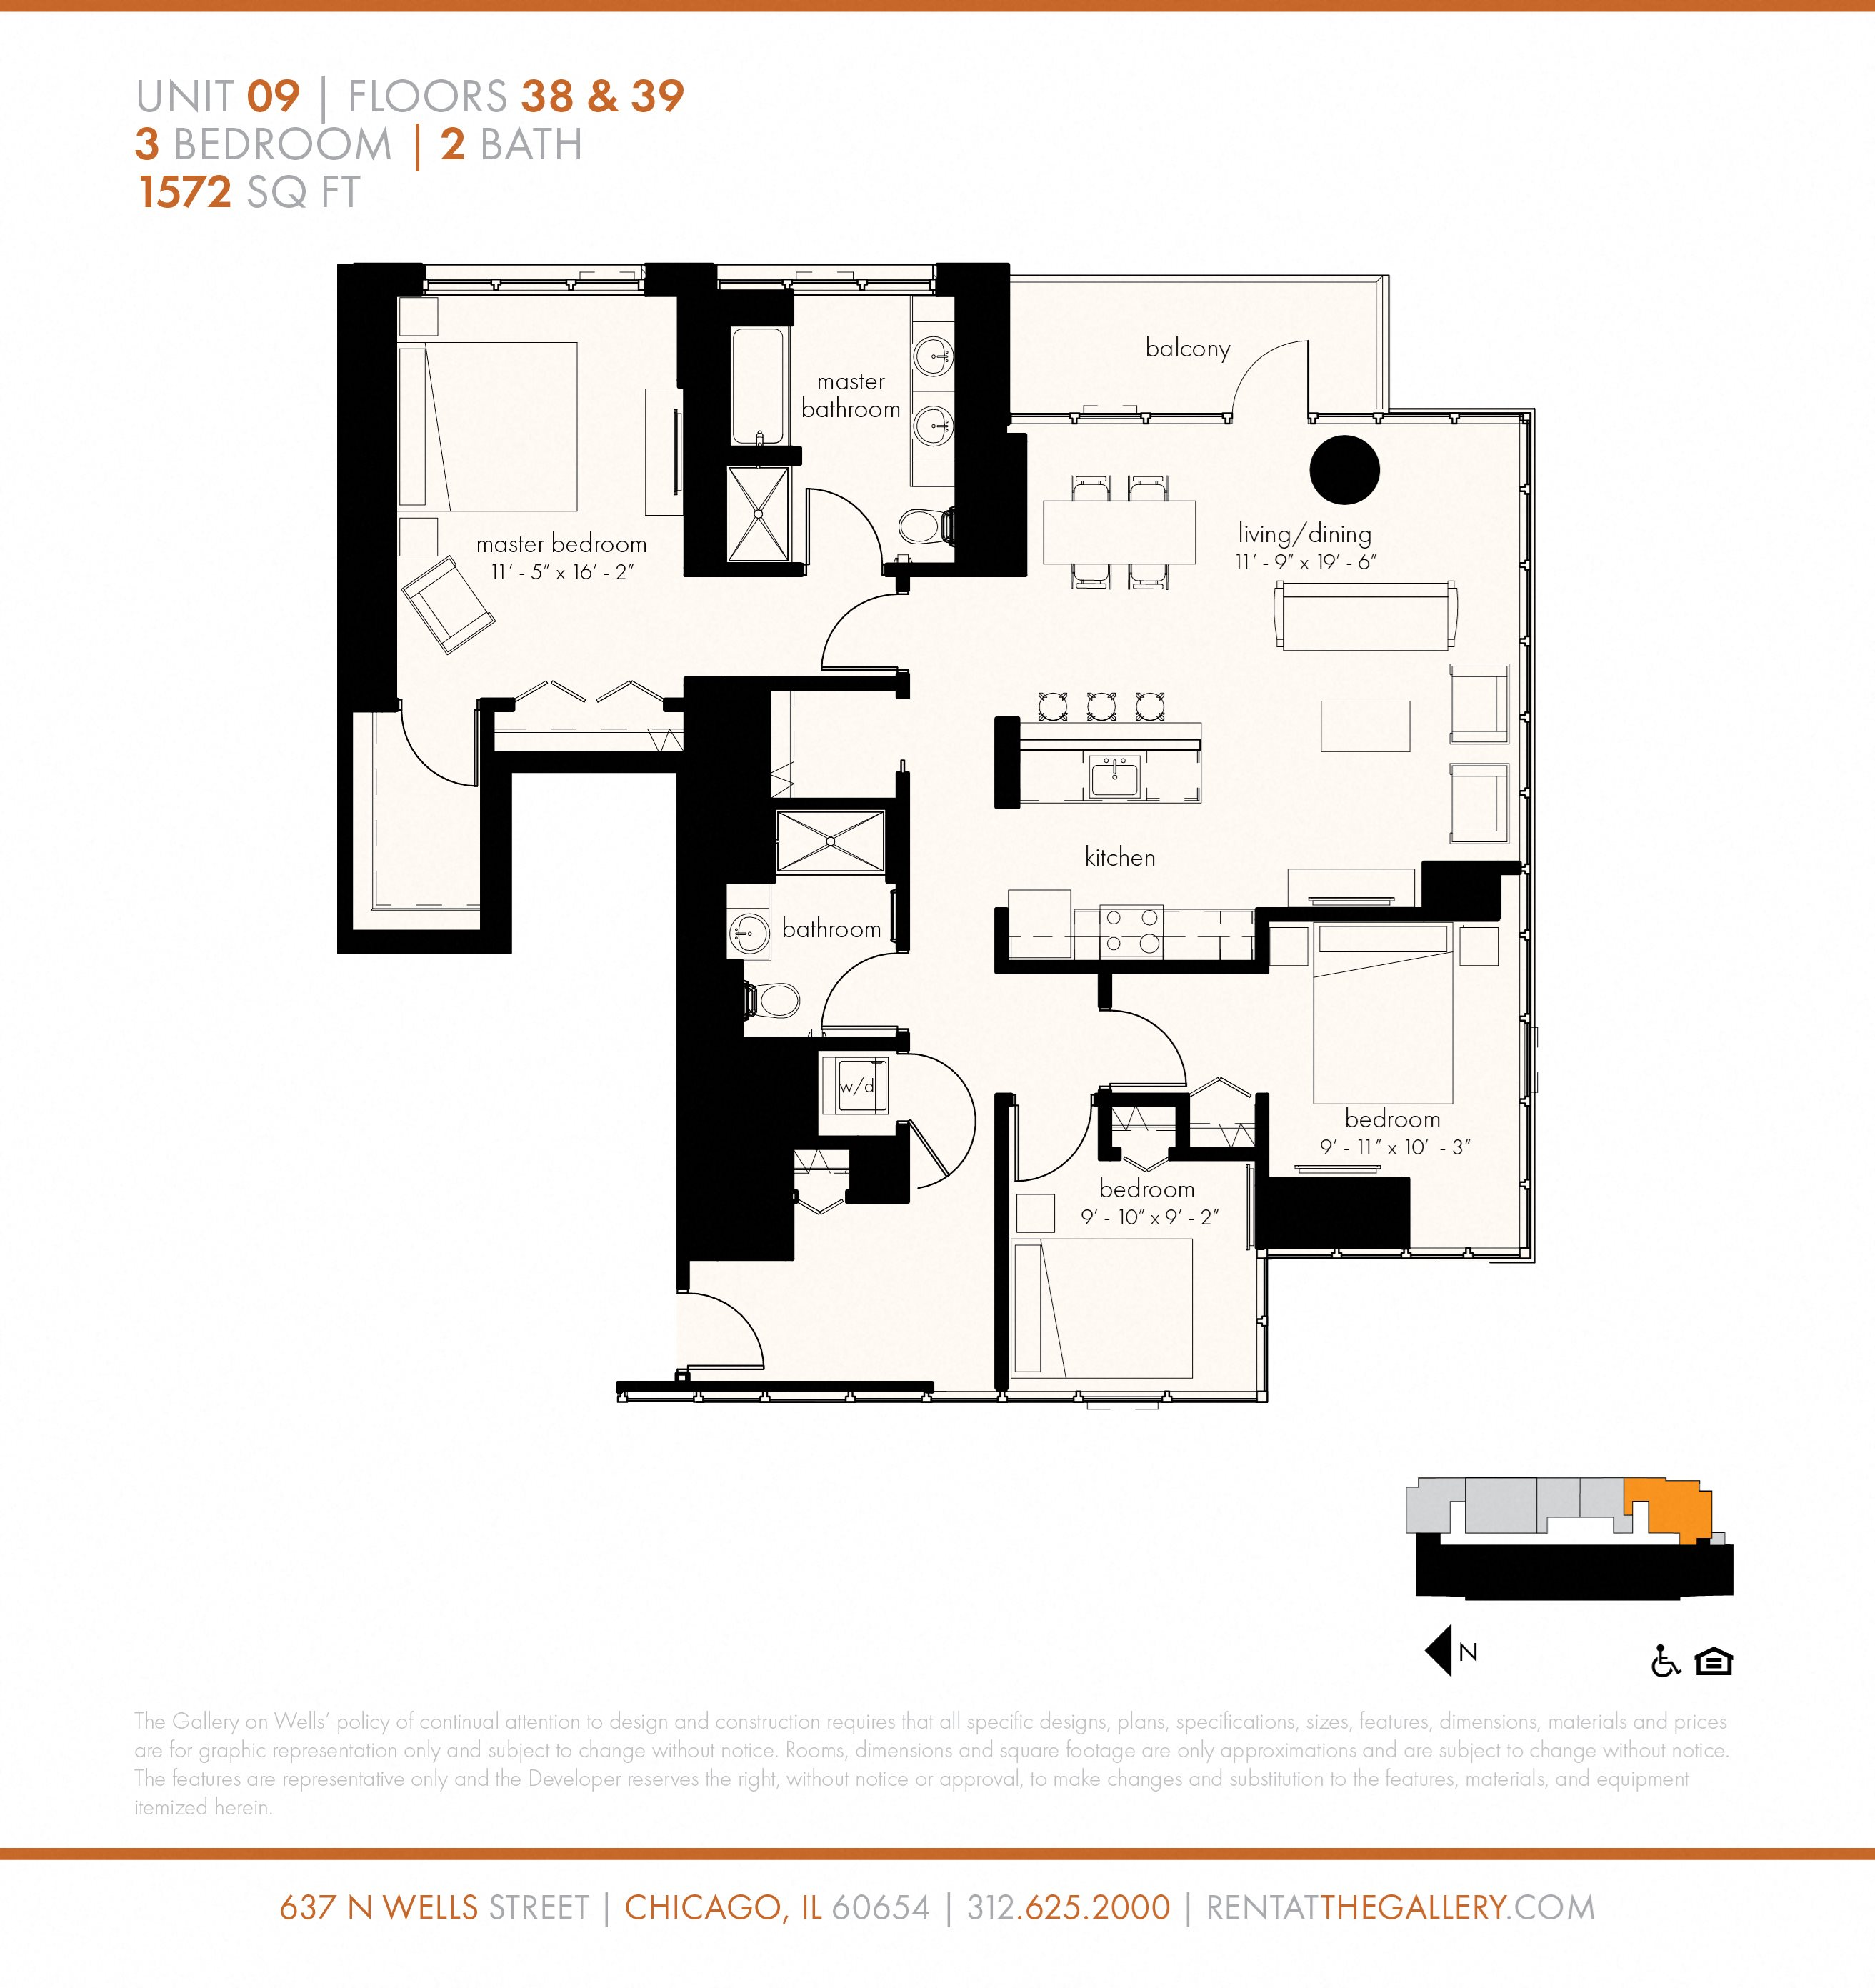 Three Bedroom (1572 sf) Floor Plan 28